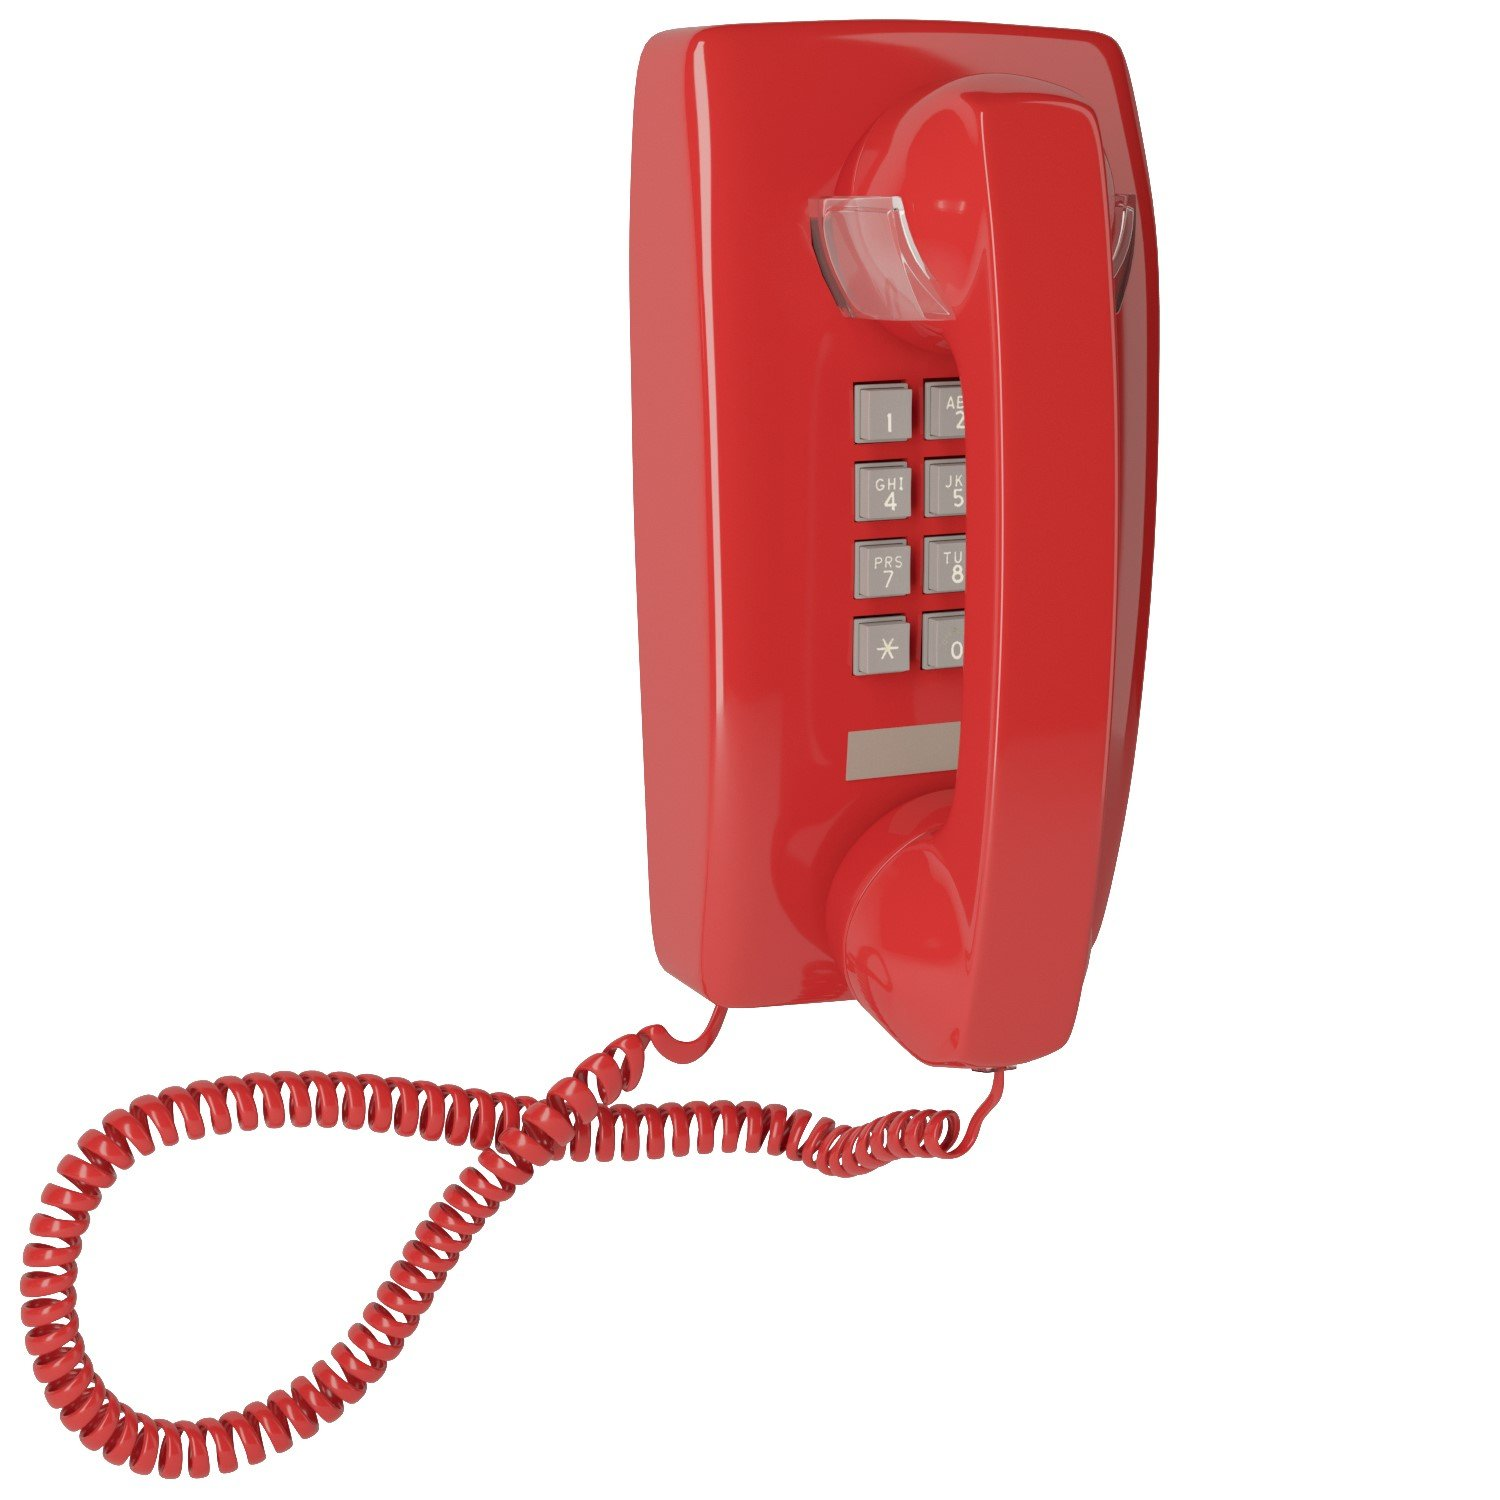 Home Intuition Single Line Wall Mounted Corded Telephone with Extra Loud Ringer, Red